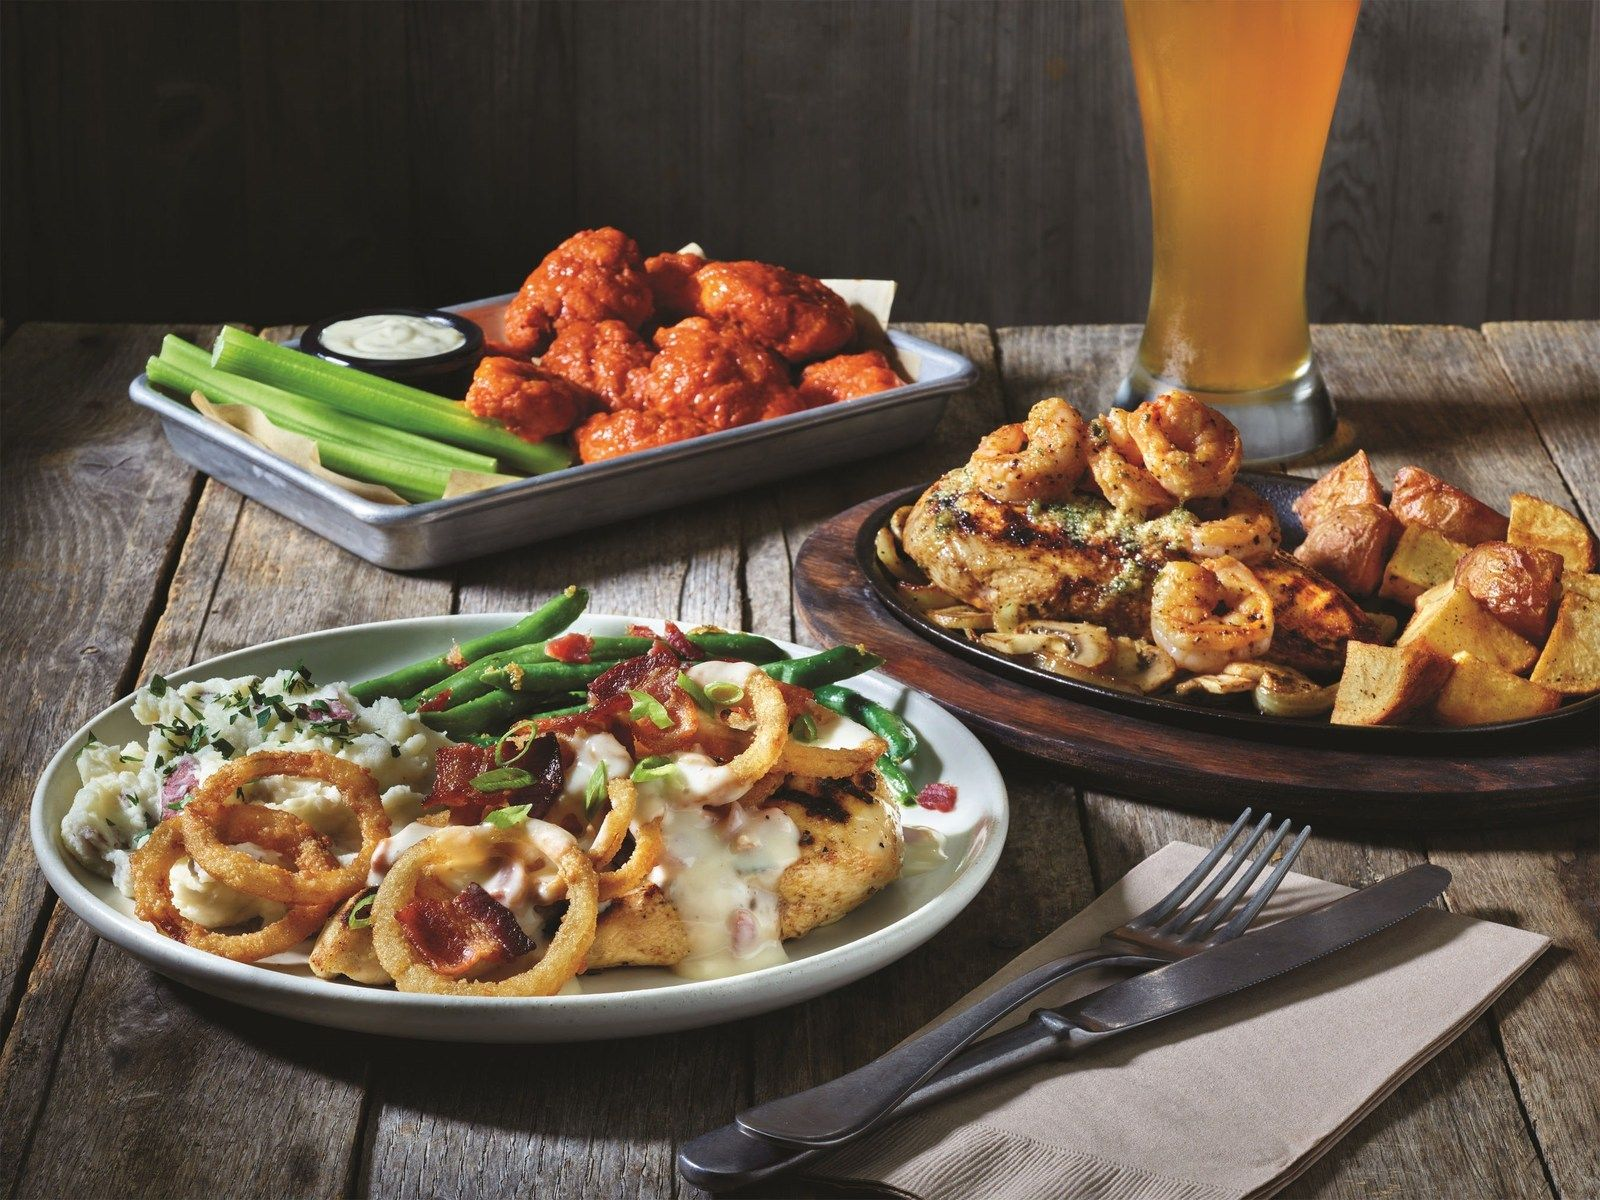 Applebee's Gives You More for Your Money with New 2 for $20 Value Menu